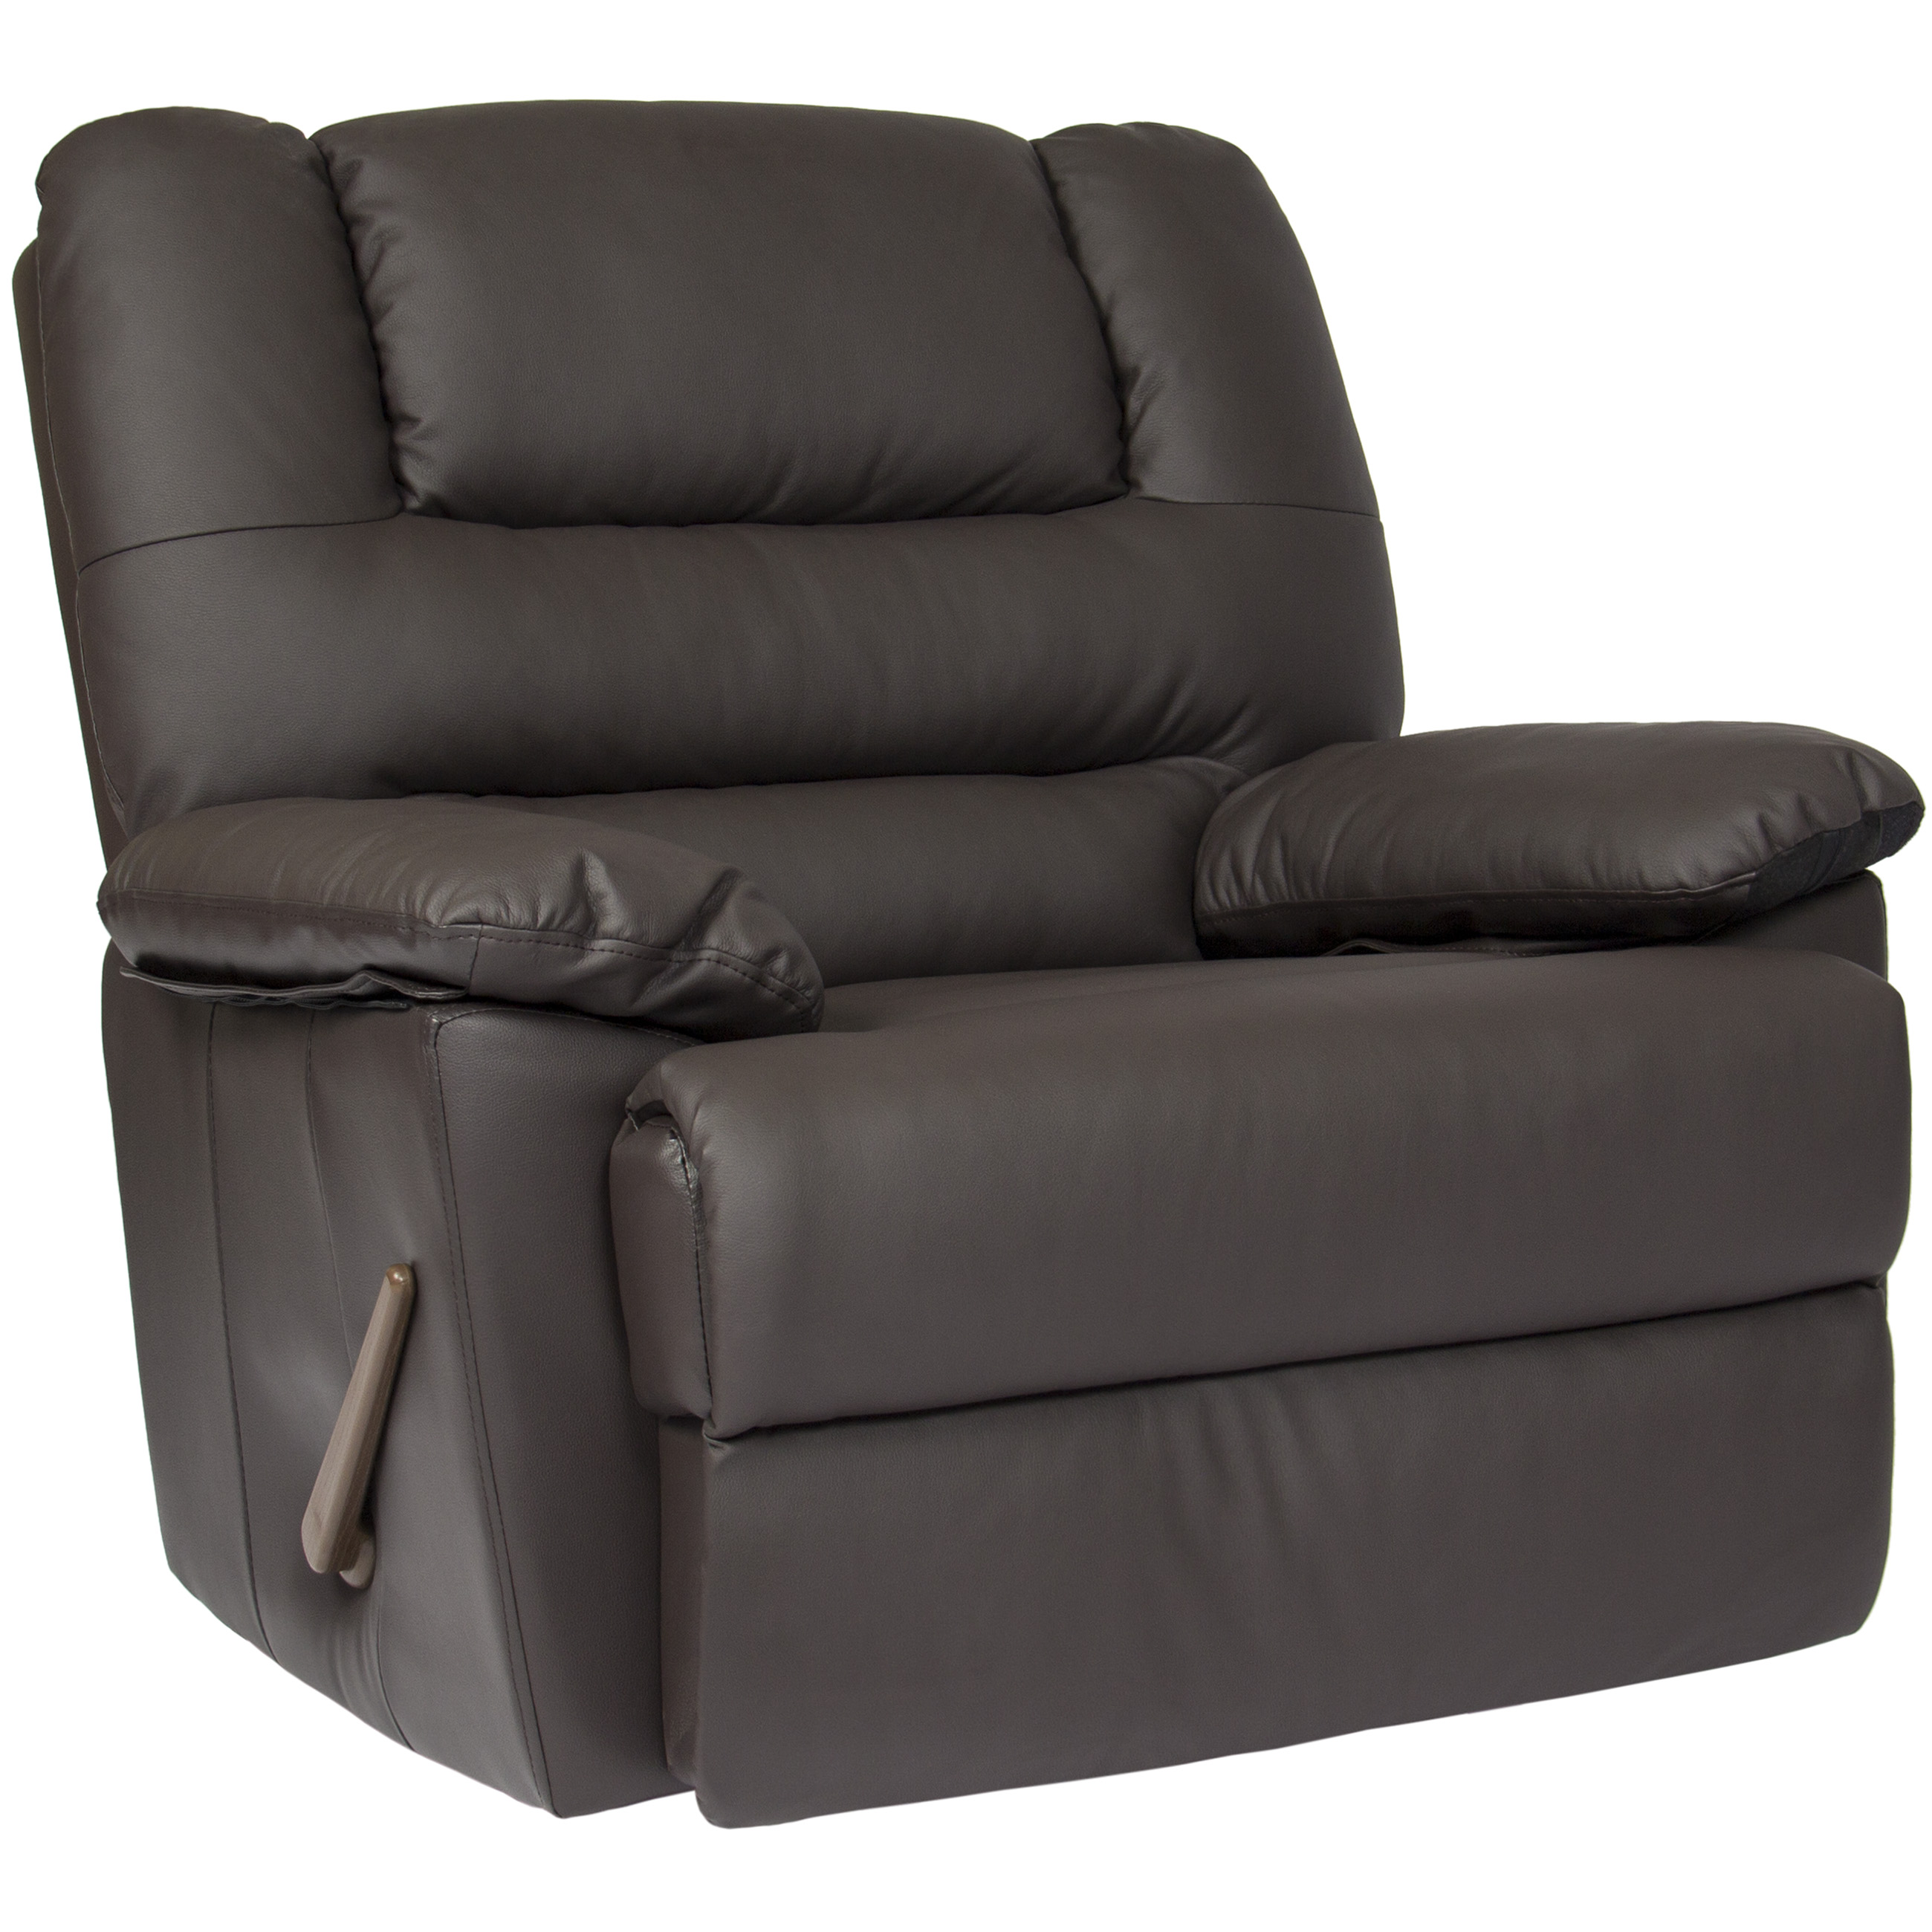 Beau Best Choice Products Deluxe Padded Leather Rocking Recliner Chair (Brown)